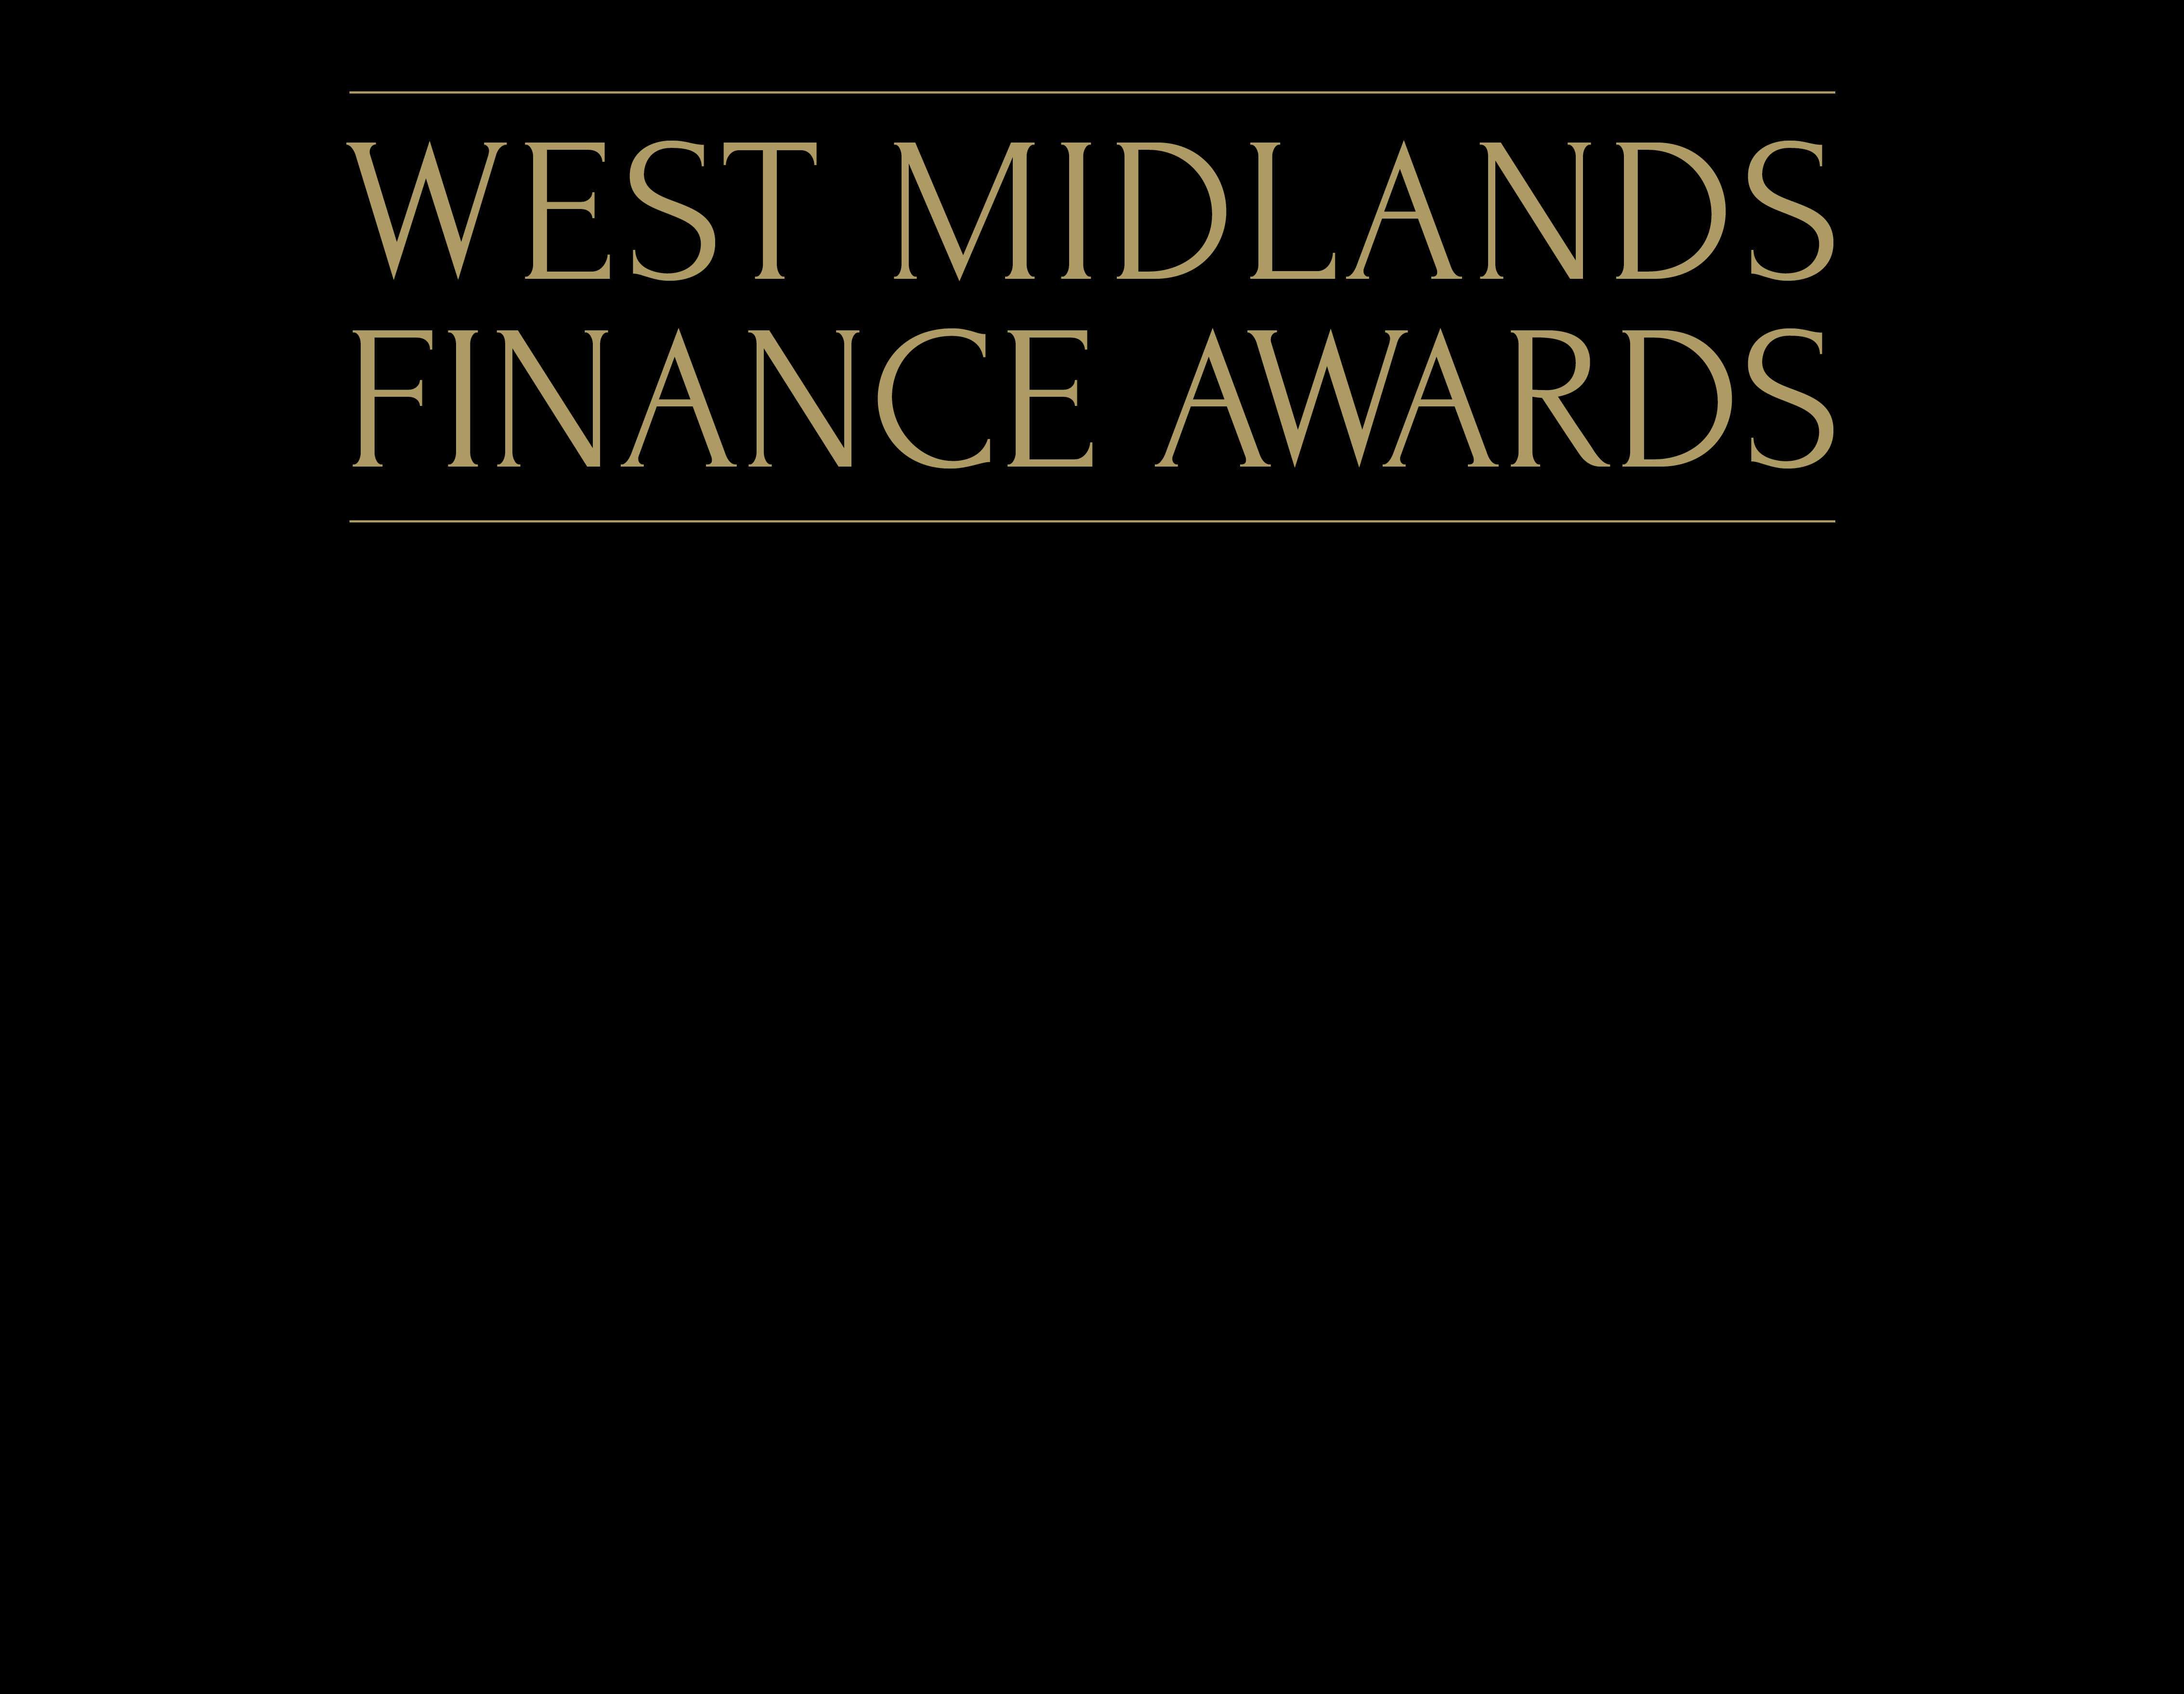 West Midlands Finance Awards logo with black banner